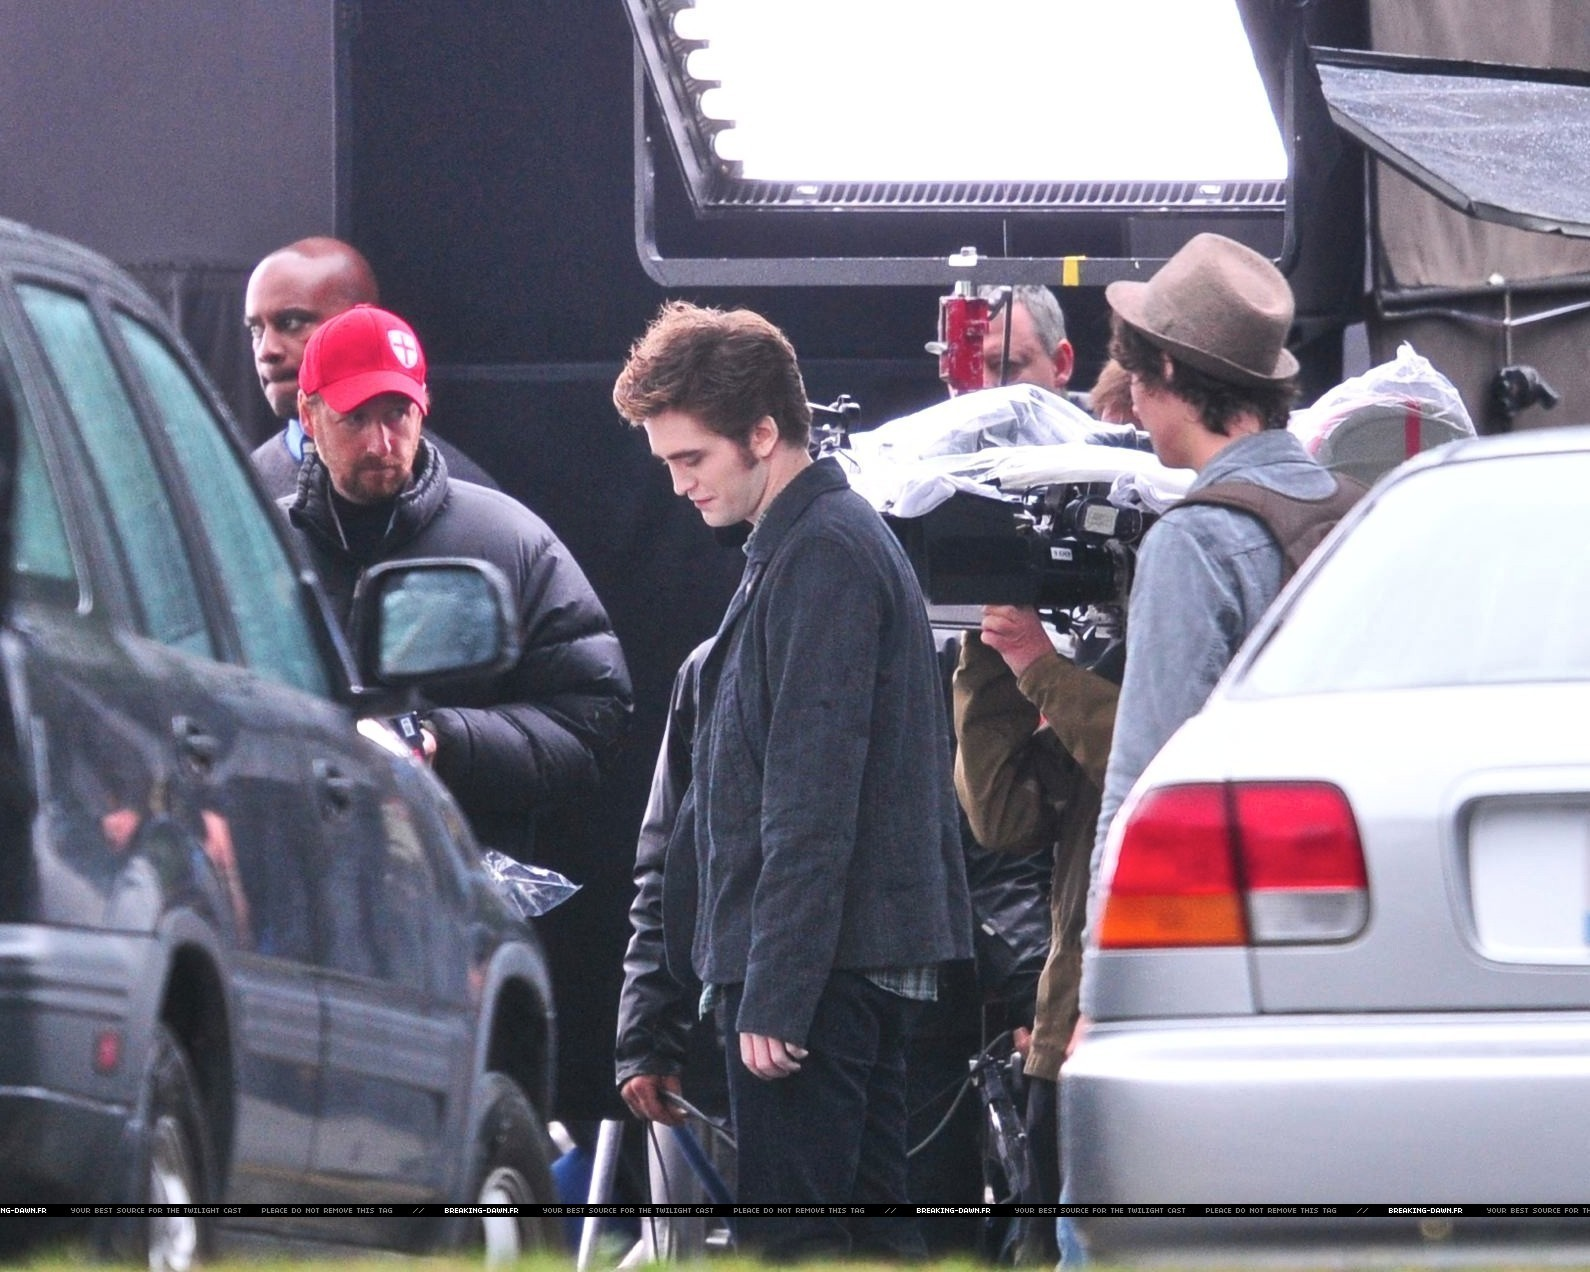 http://images2.fanpop.com/images/photos/8000000/Rob-kristen-on-the-set-of-Eclipse-yesterday-twilight-series-8080099-1590-1272.jpg